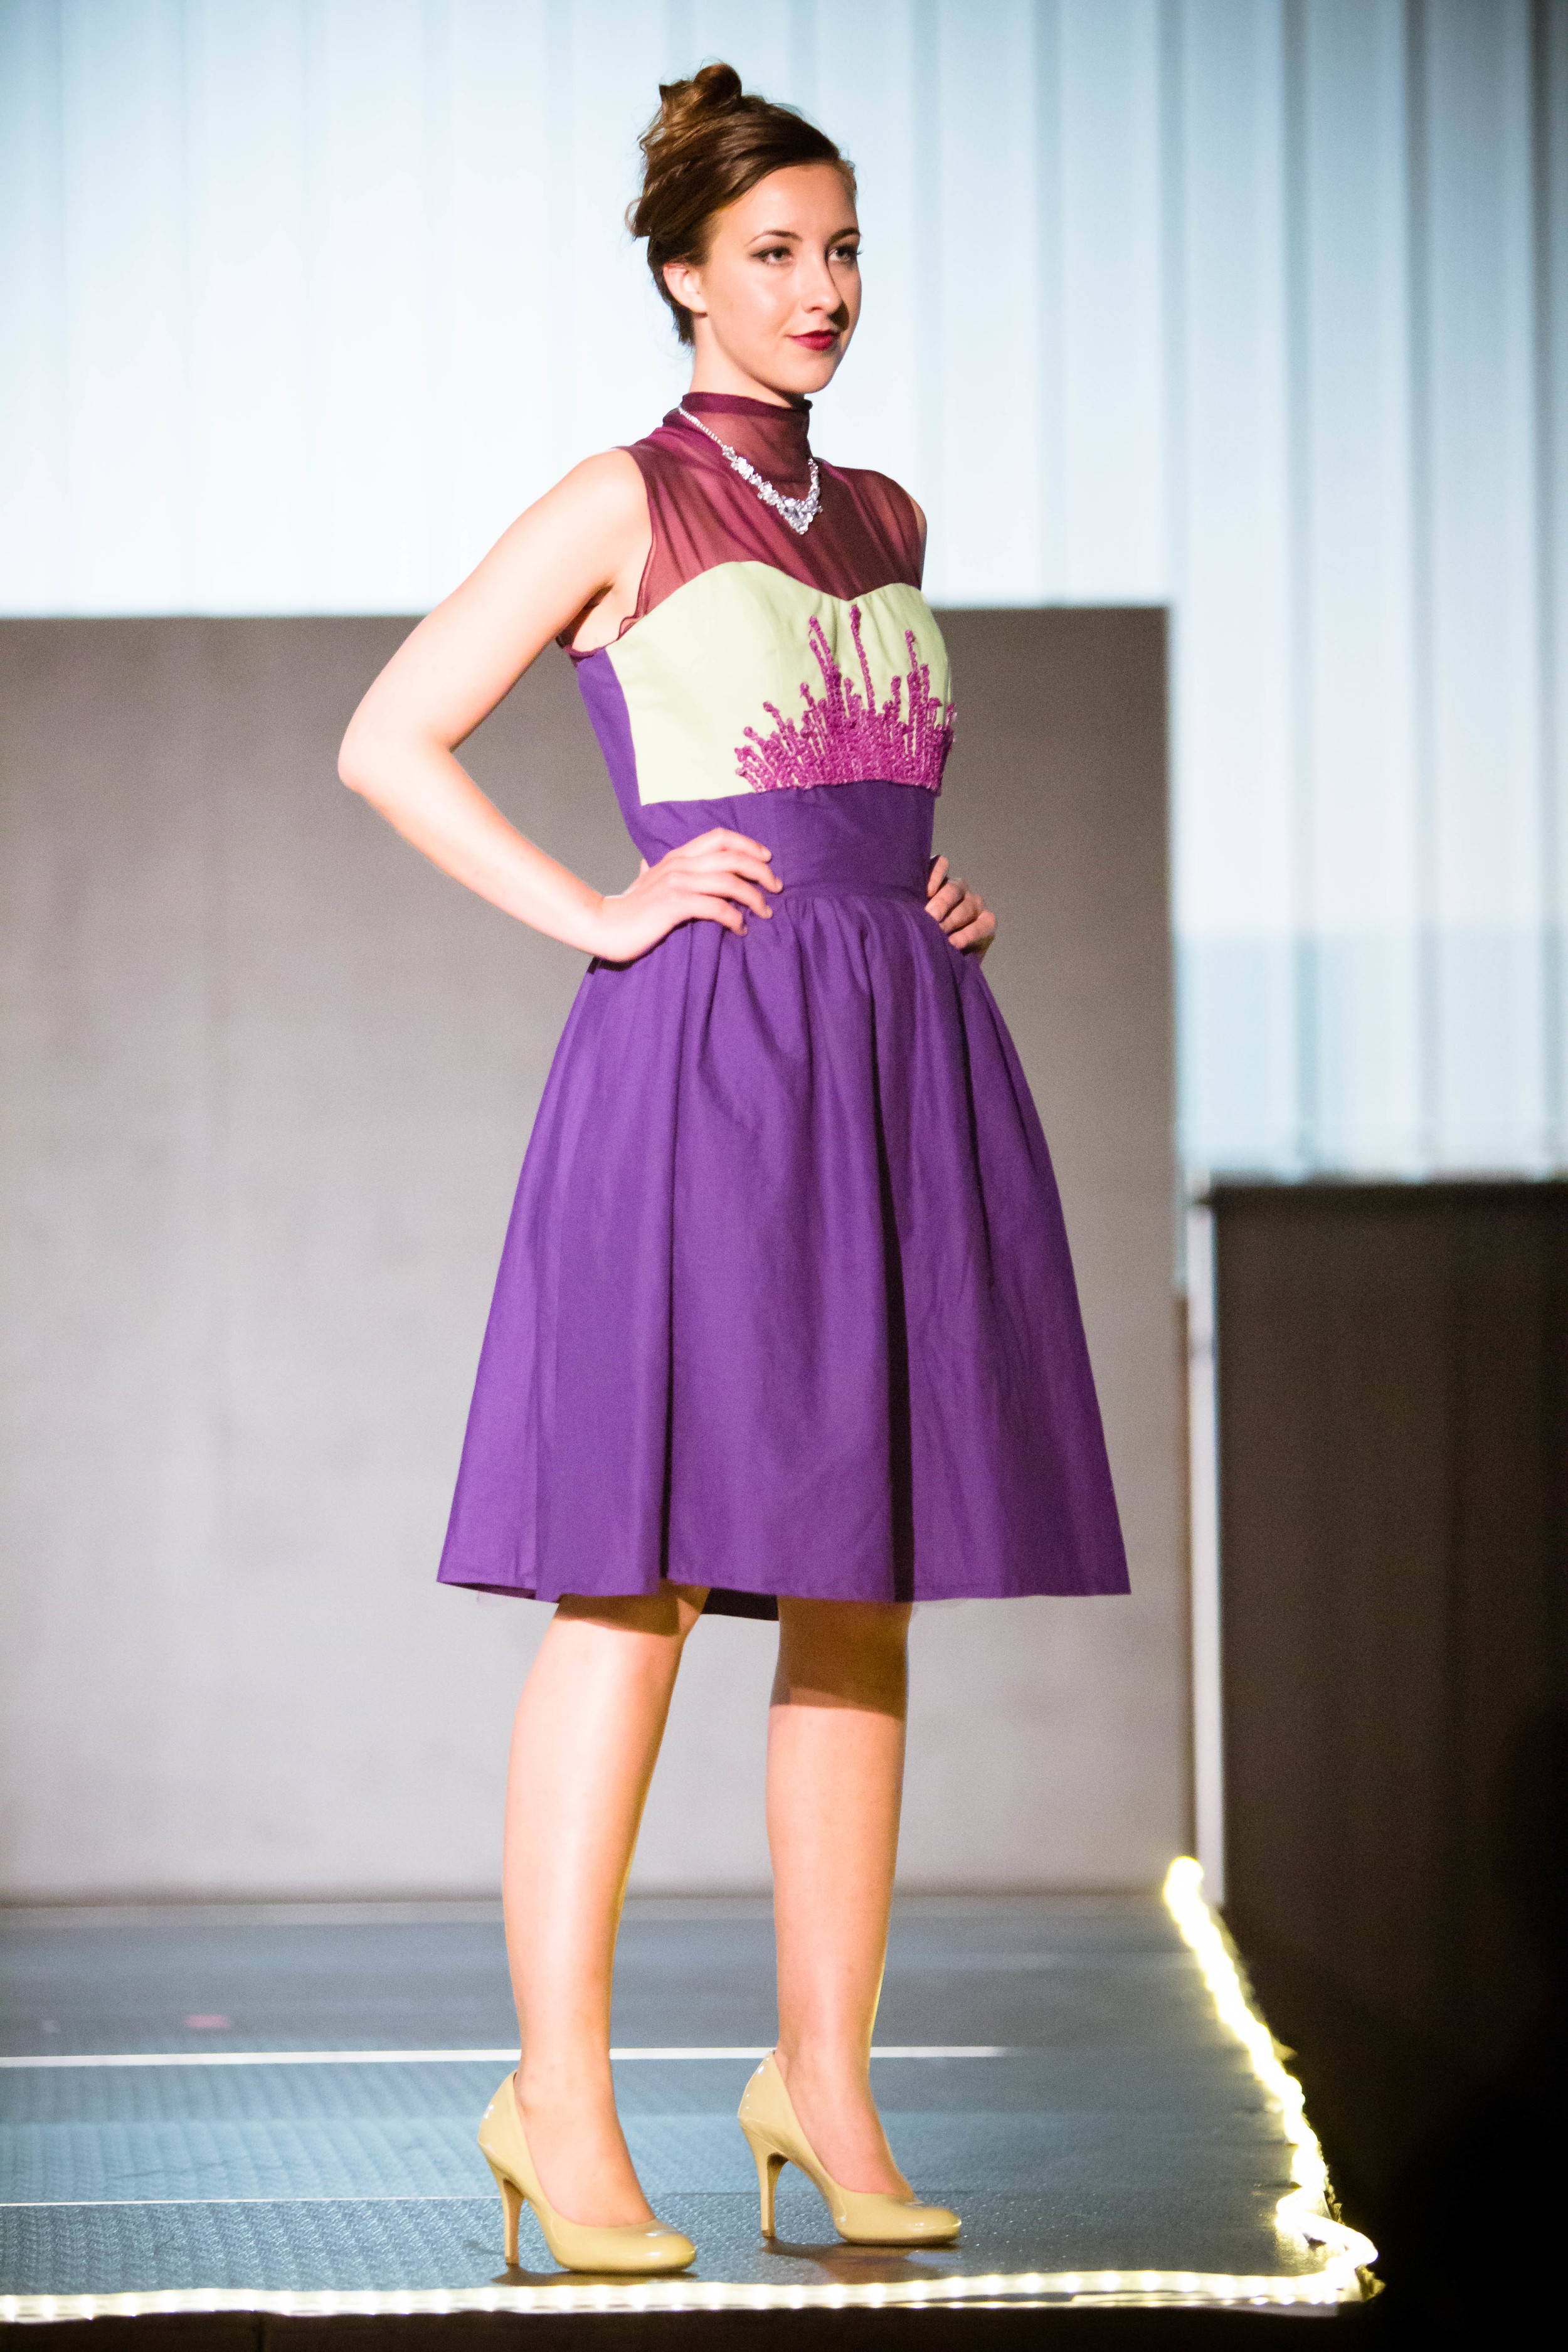 CottonCouture-70.jpg